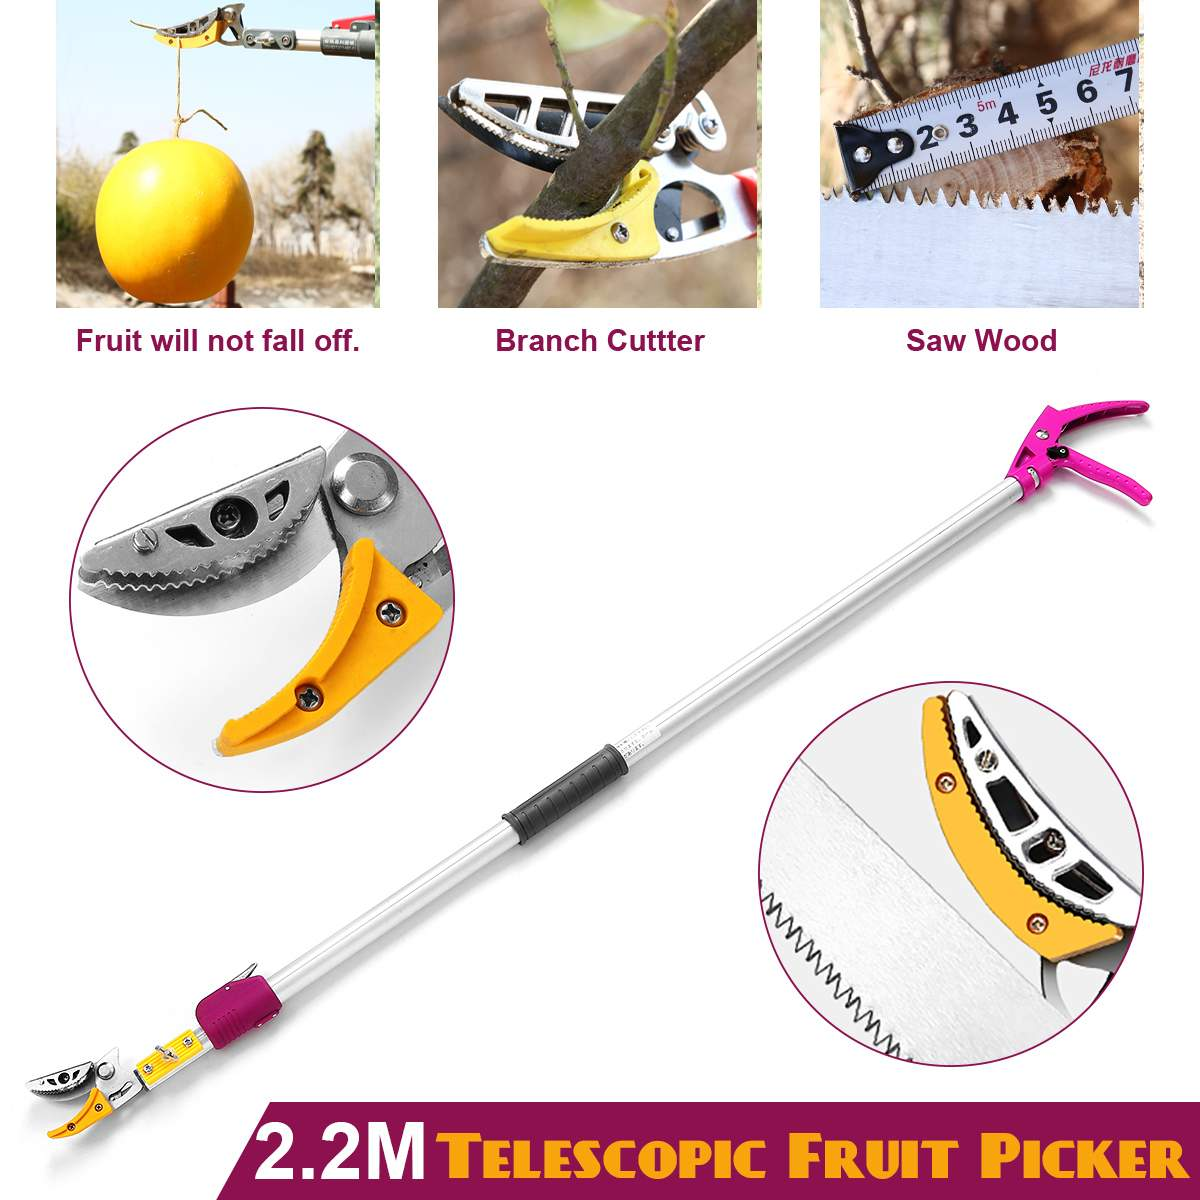 2.2m Extra Long Reach Pruner Cut And Hold Bypass Pruner Max Cutting 1/2 Inch Fruit Picker And Tree Cutter For Garden